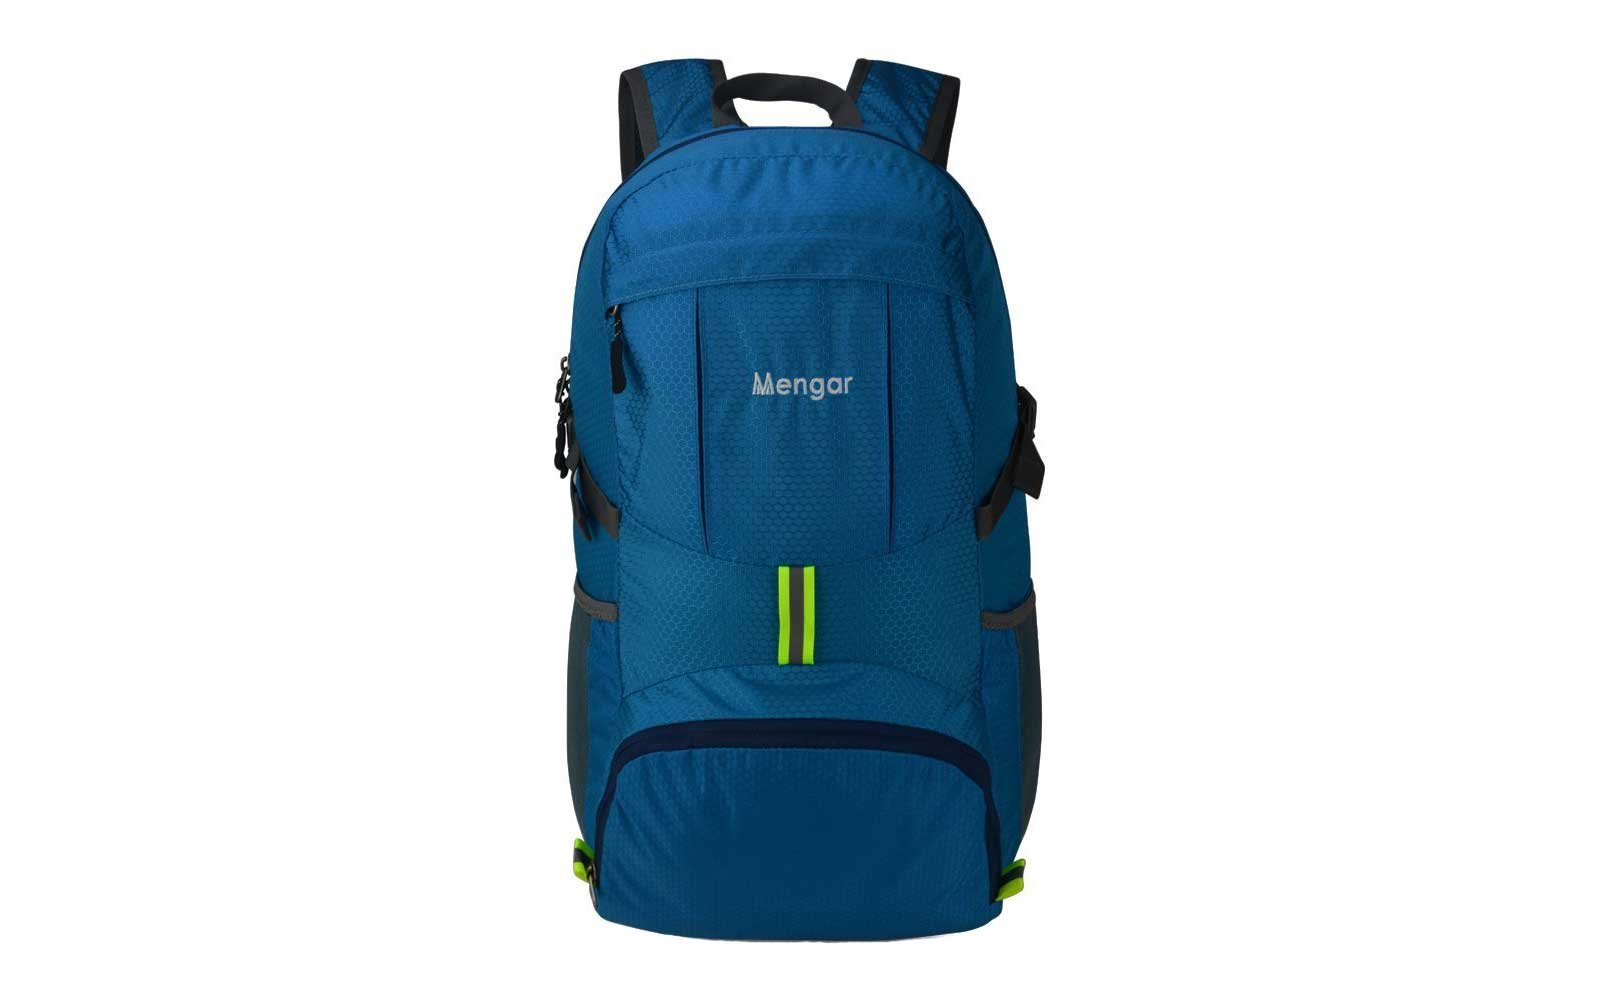 6aab4ca014 The Best Waterproof Travel Backpacks in 2019